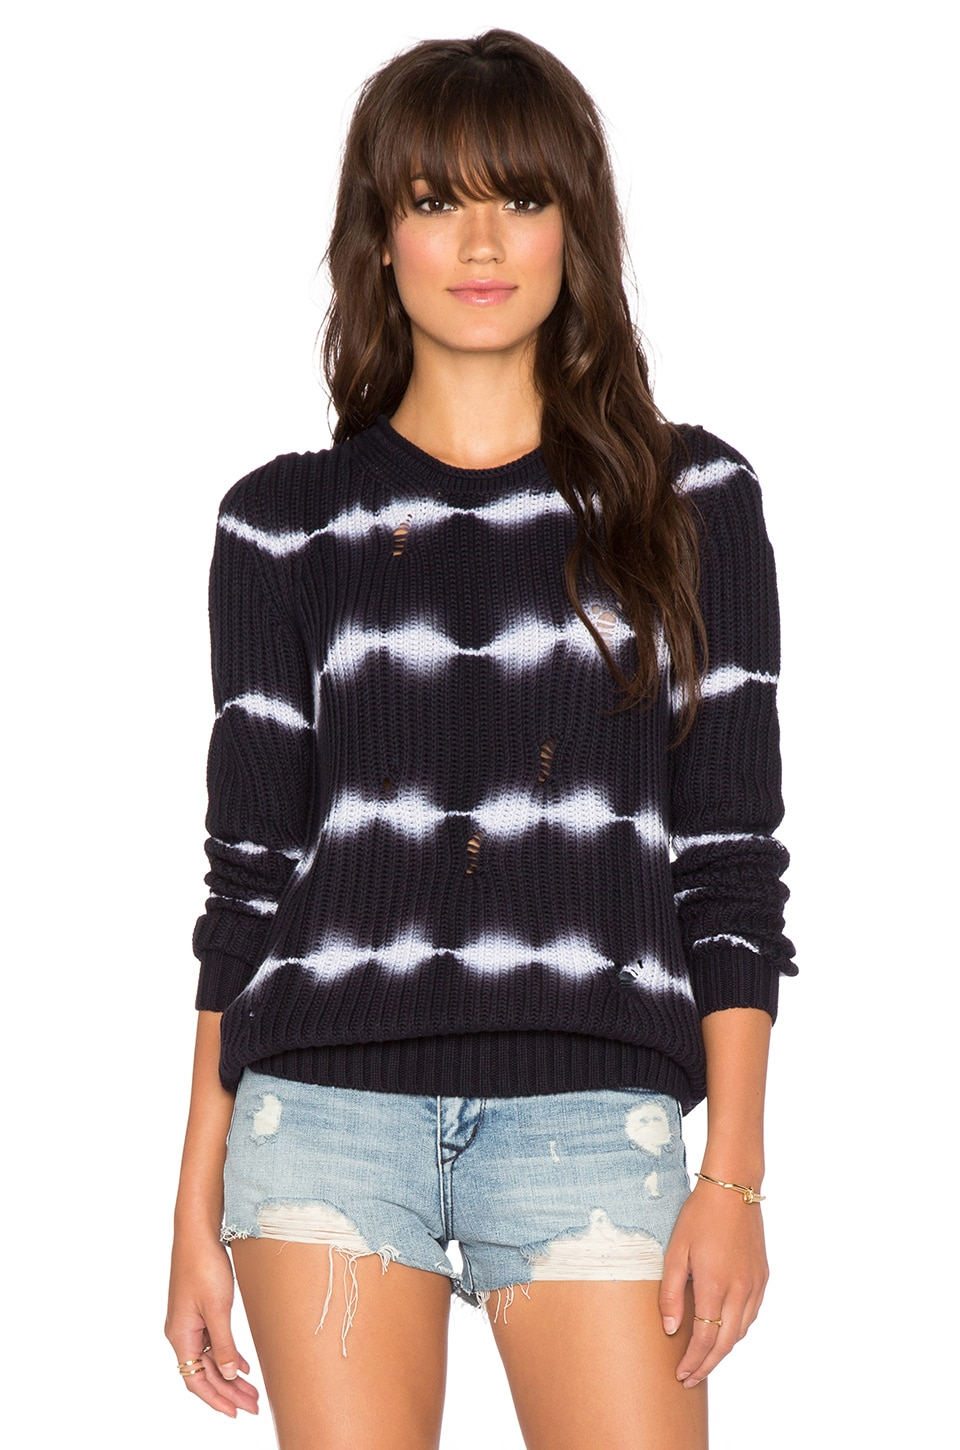 Autumn Cashmere Tie Dye Torn Stitch Crew Sweater in Navy Blue